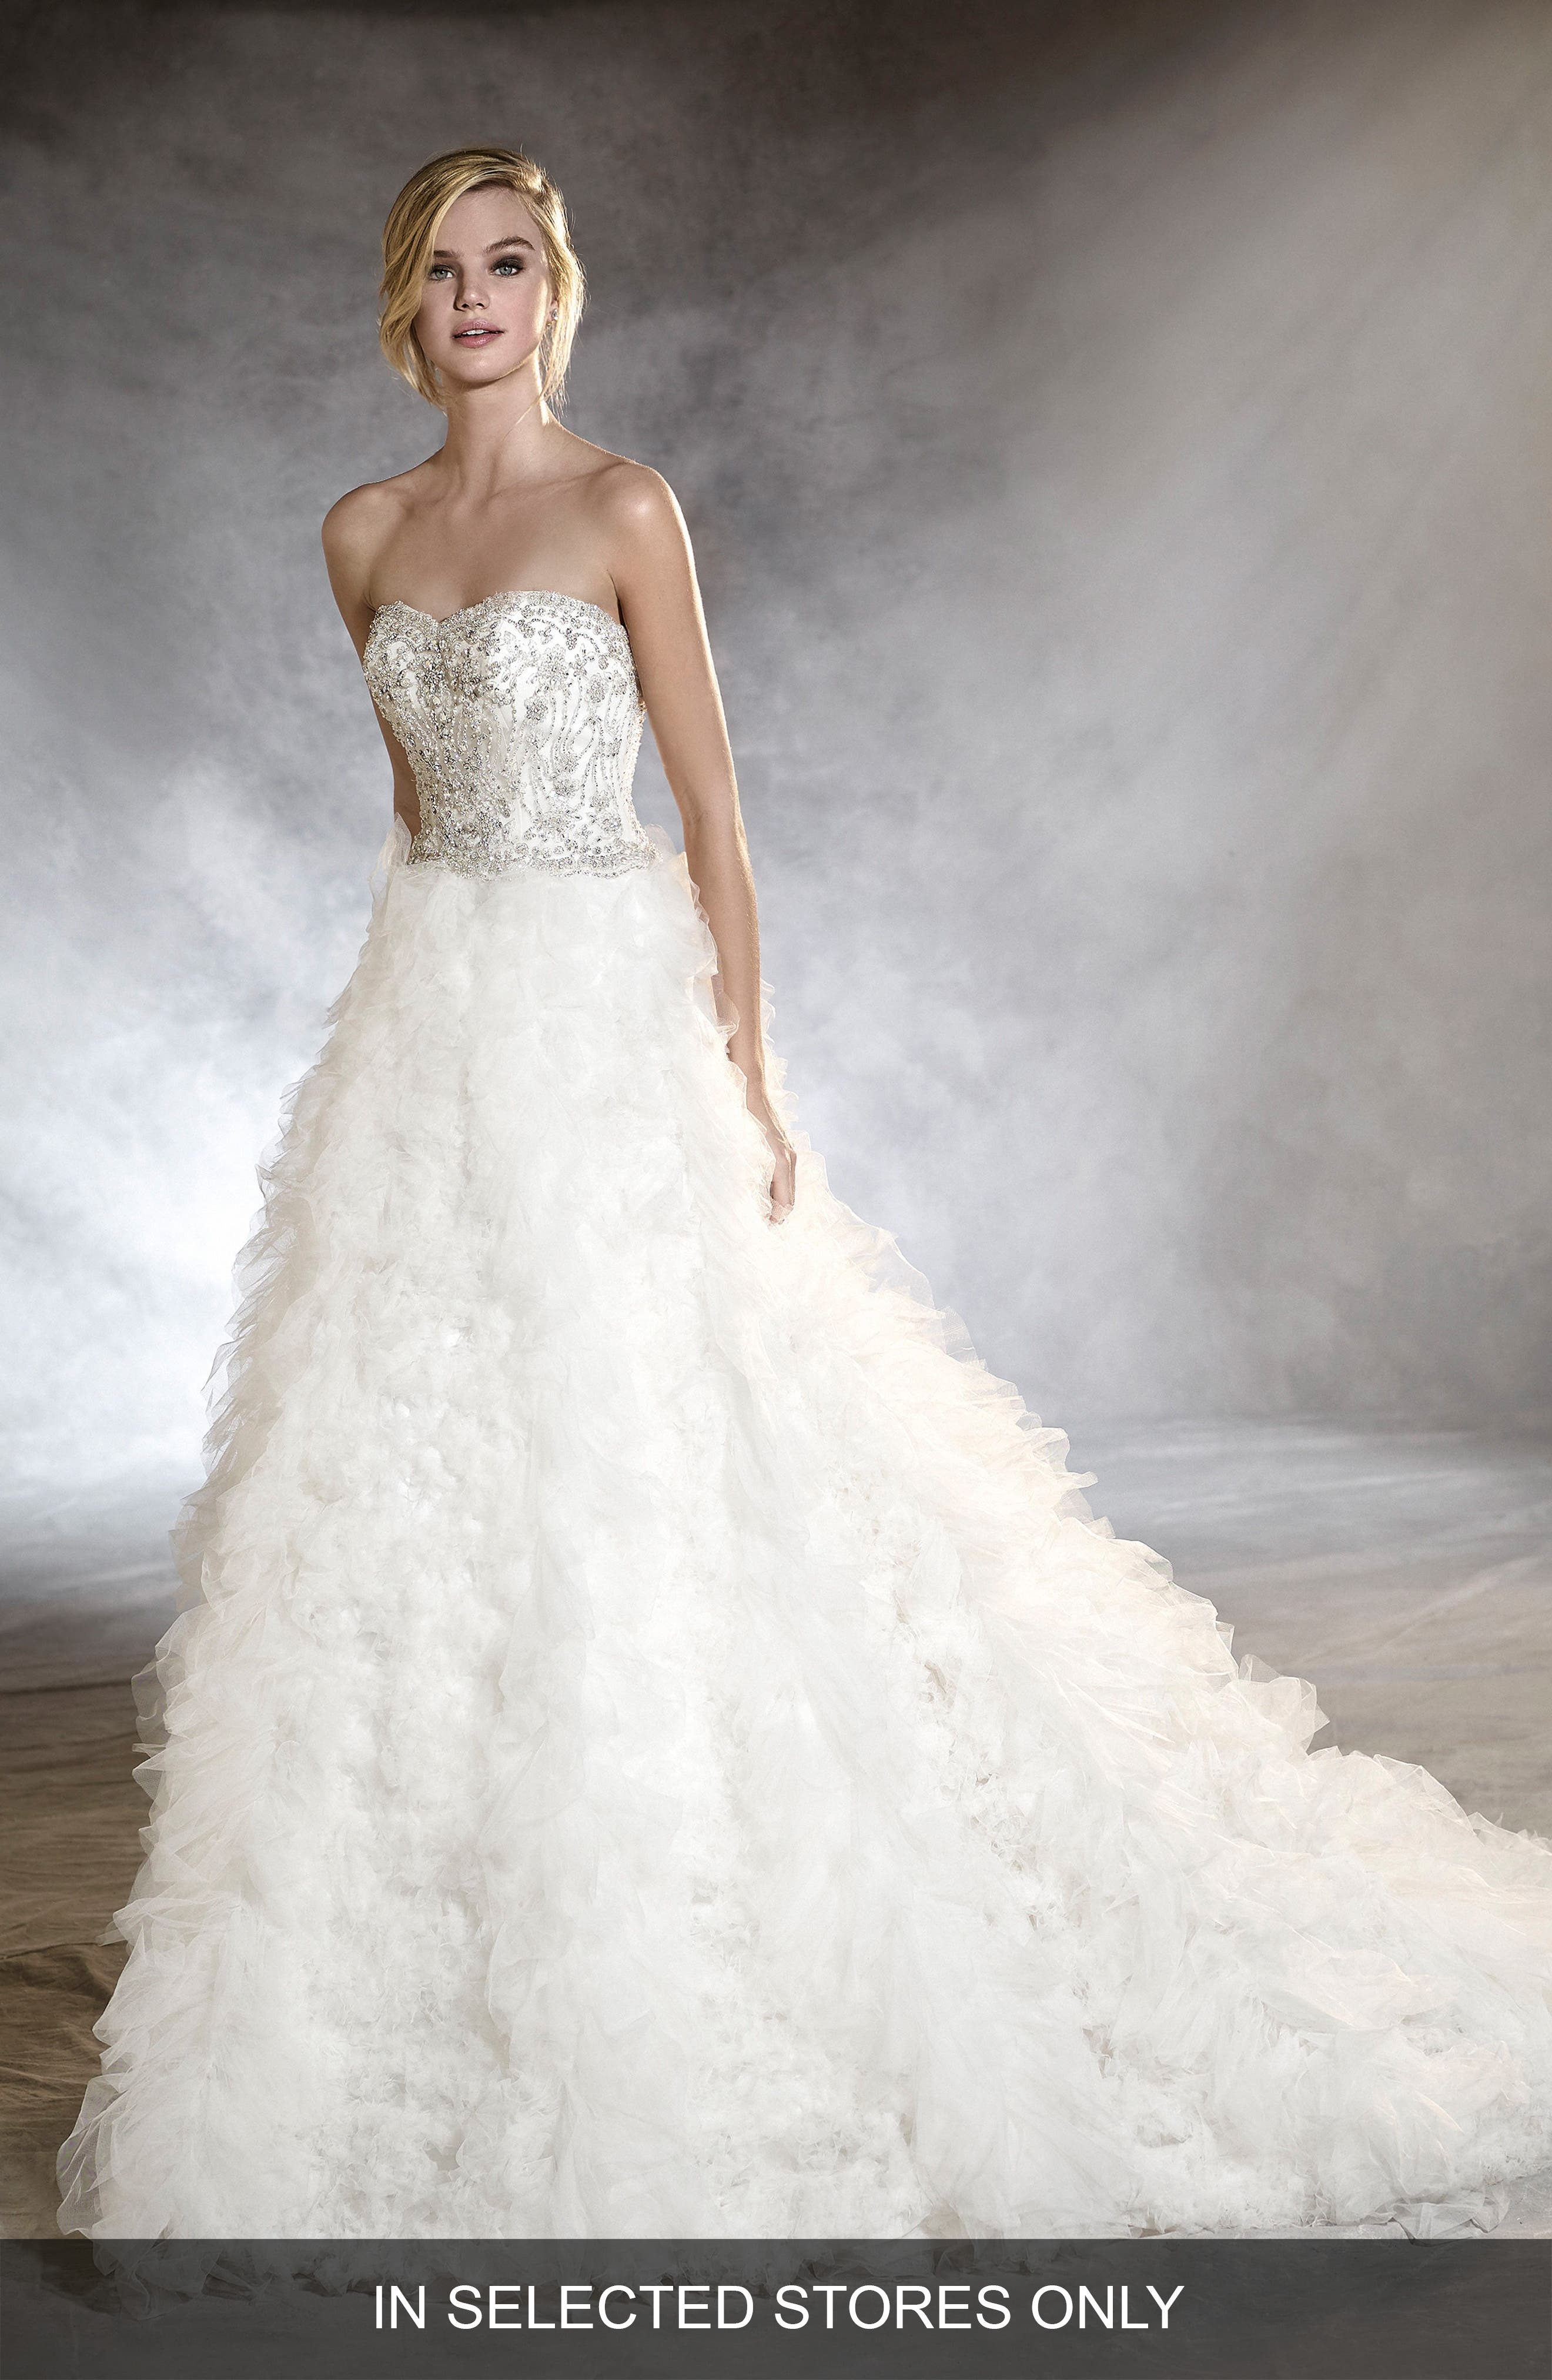 Onoria Strapless Tulle A-Line Gown,                             Main thumbnail 1, color,                             Off White